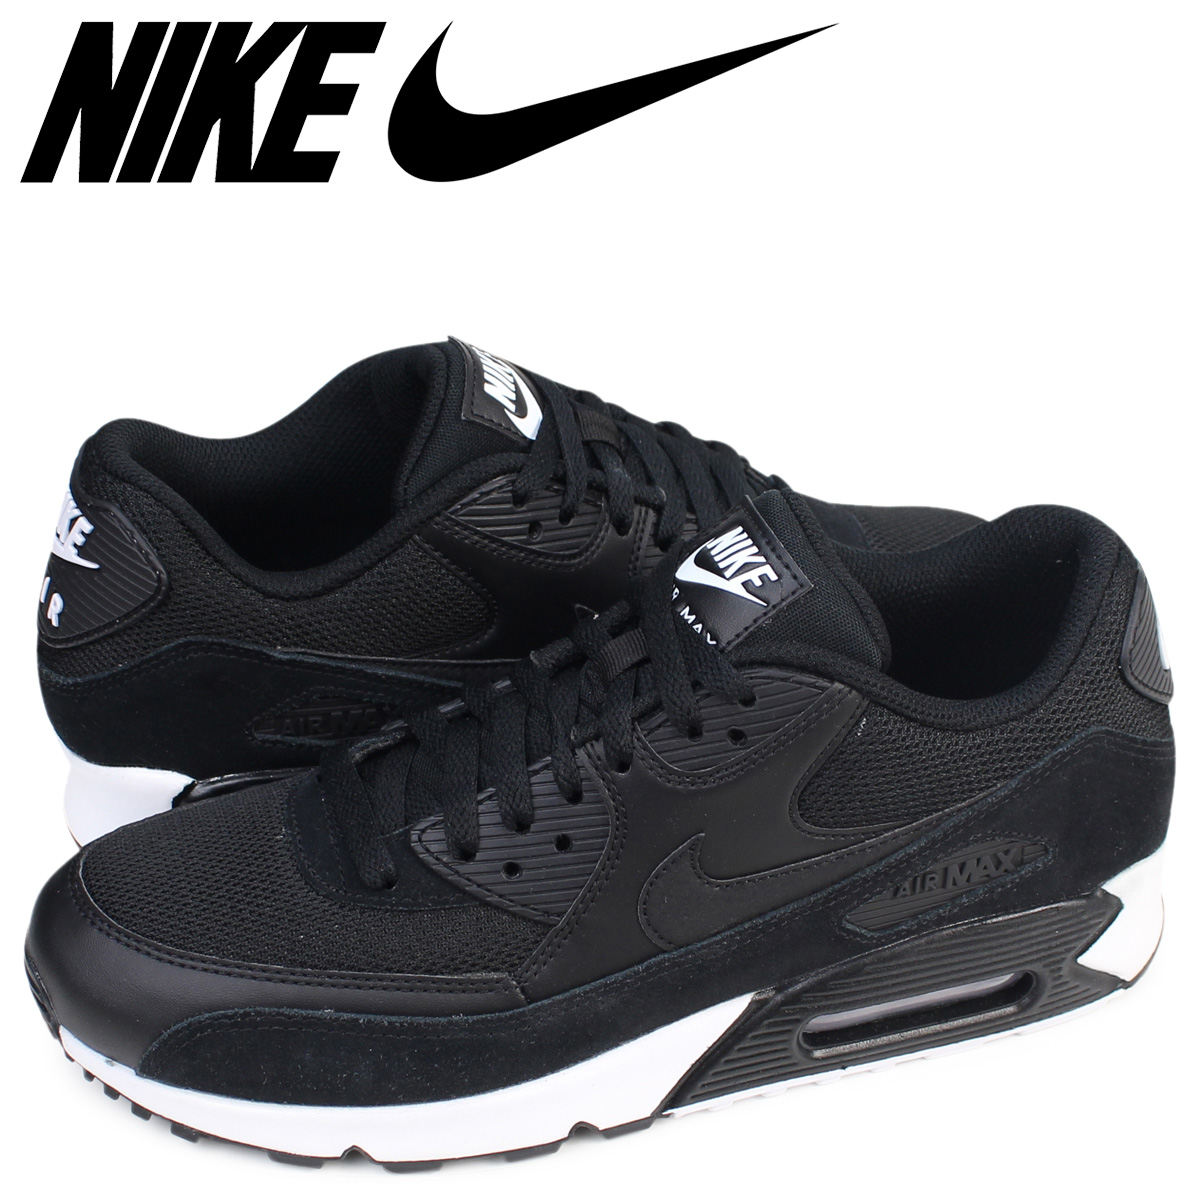 Nike Air Max 90 Essential Black Black White 537384 077